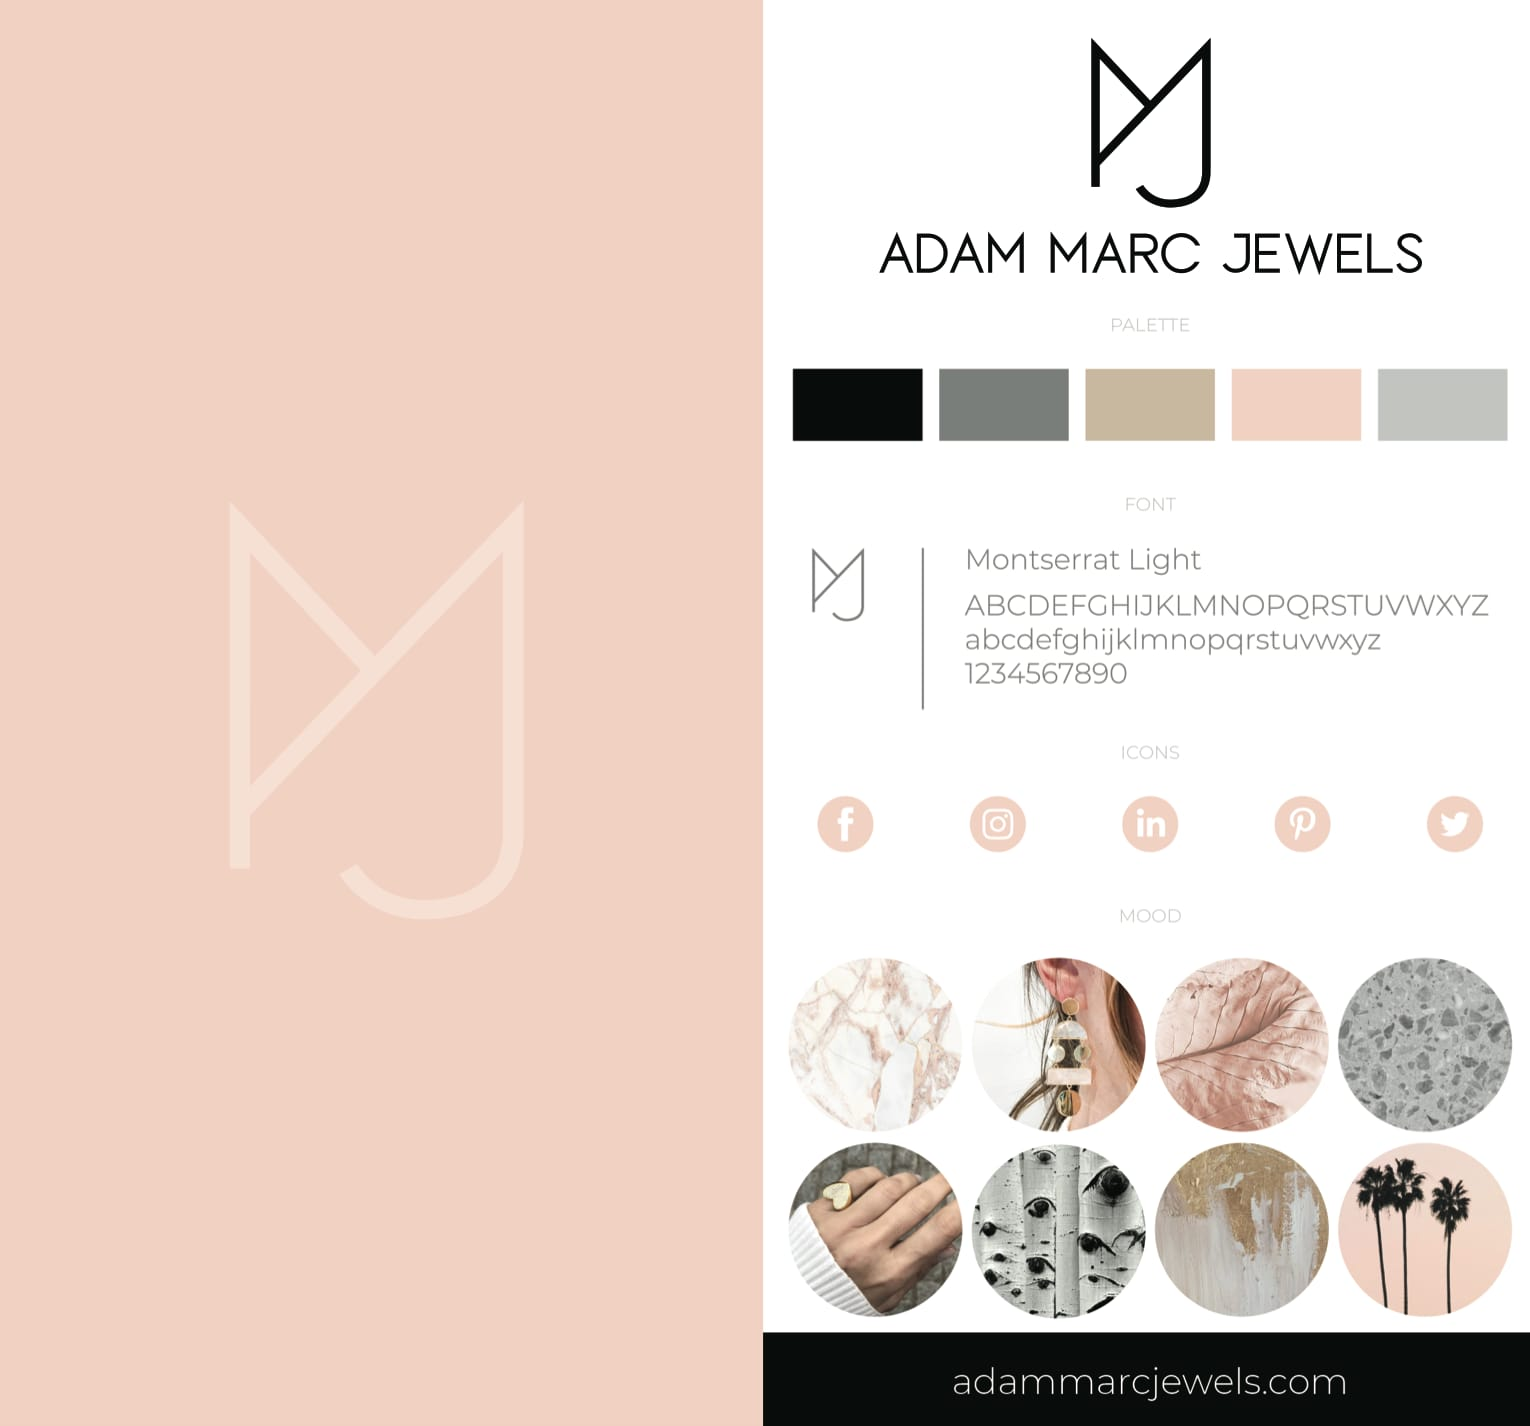 Adam Marc Jewels Branding Sheet